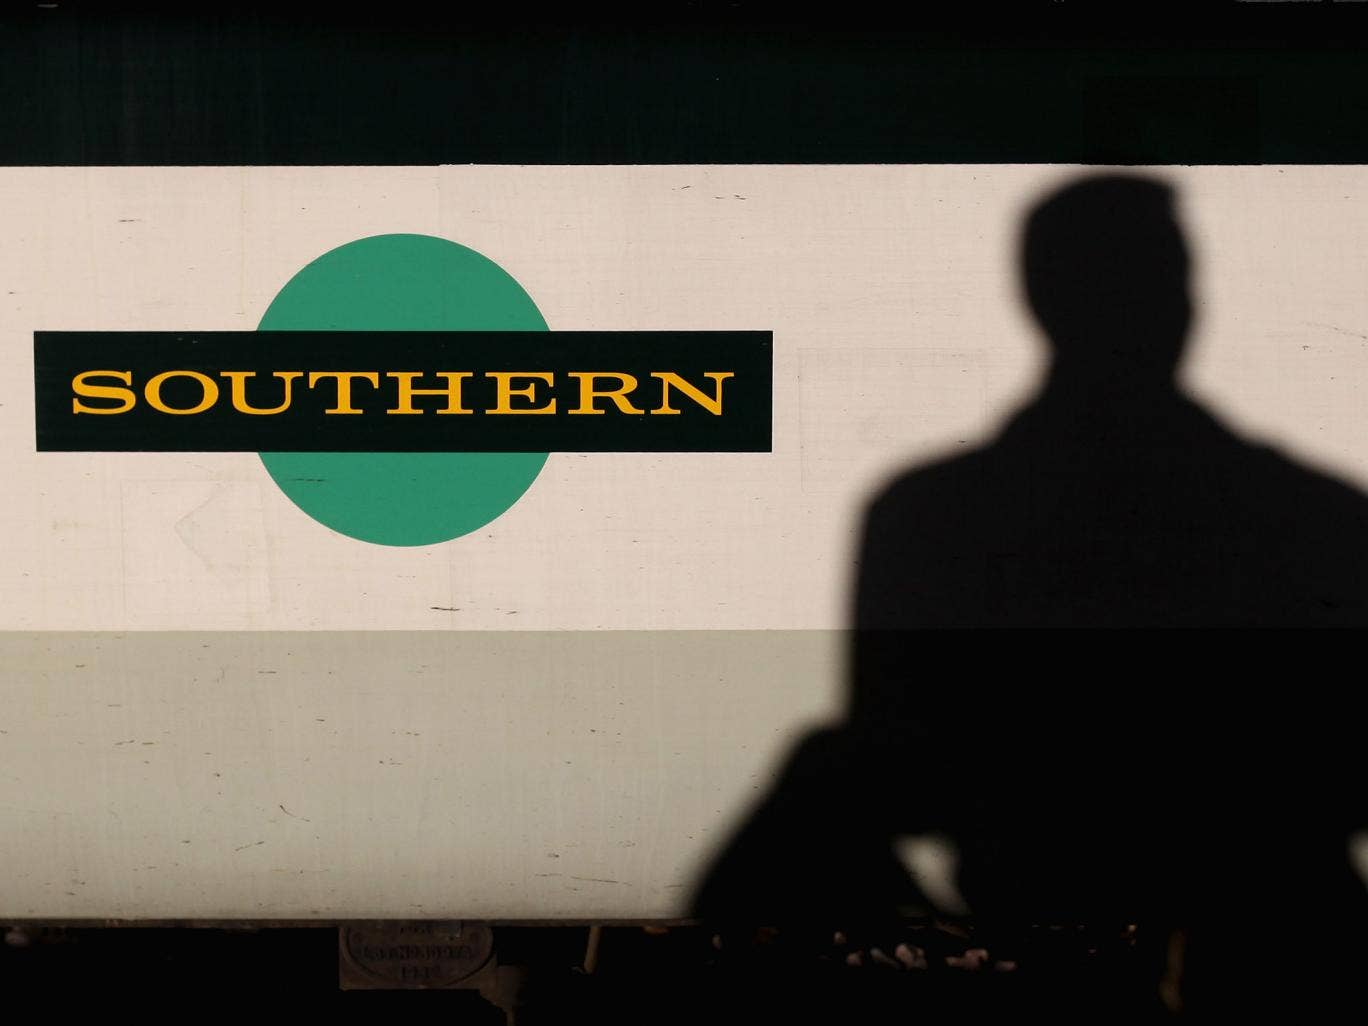 A string of franchises are due to expire after next year's general election, including Southern, London Midland, Wales and Borders